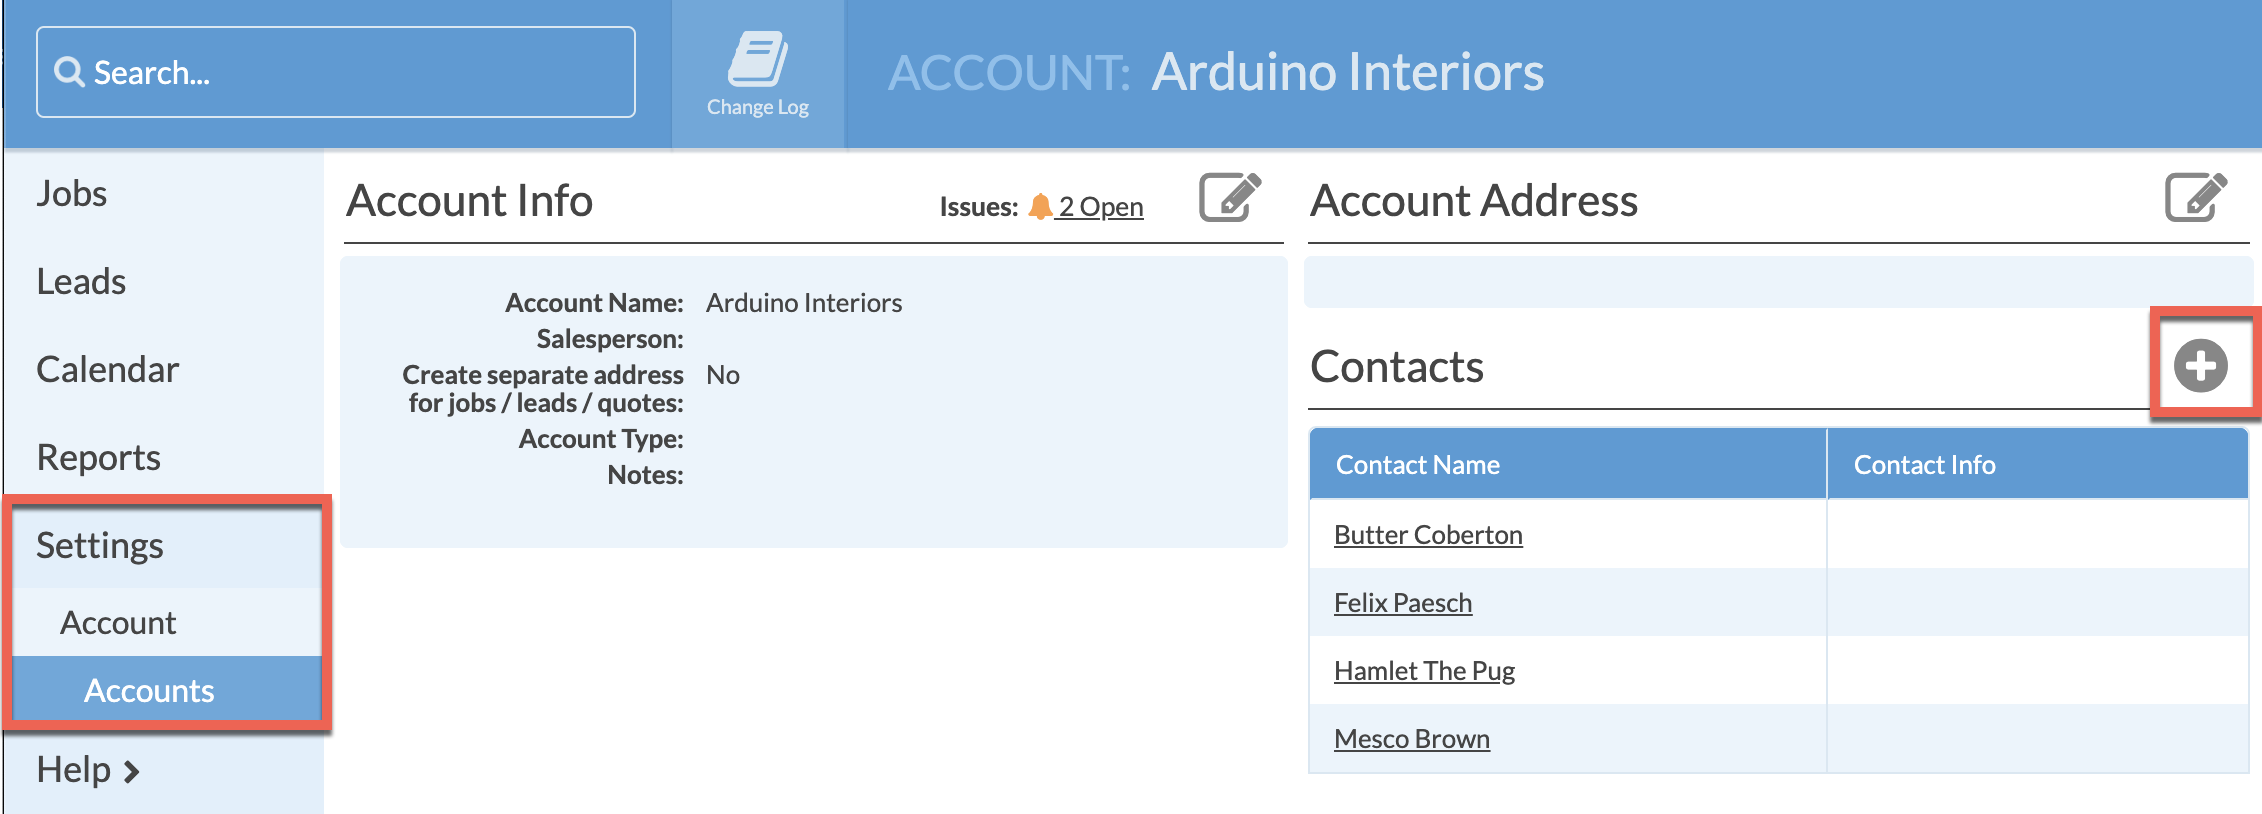 Add contacts to Account page